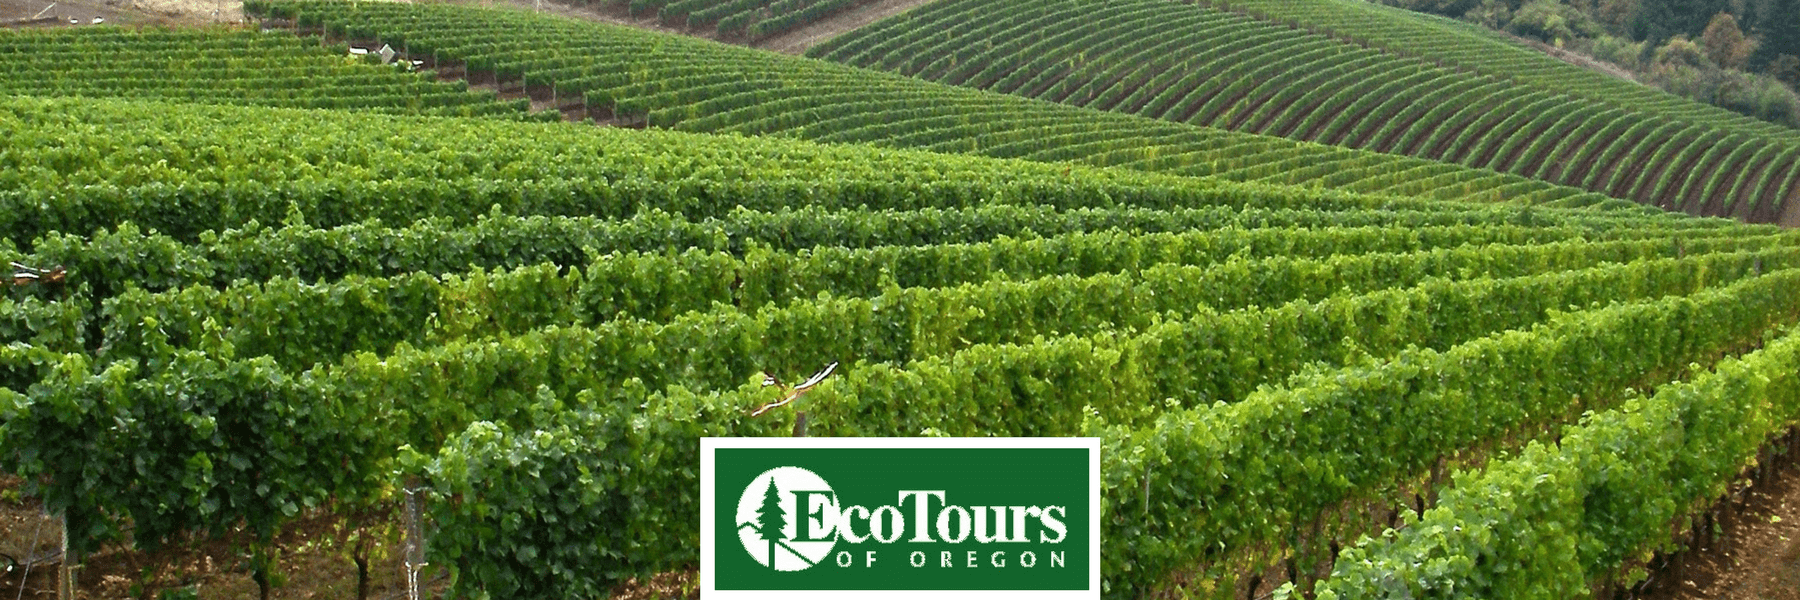 Winery Tour in the Willamette Valley Countryside - EcoTours of Oregon